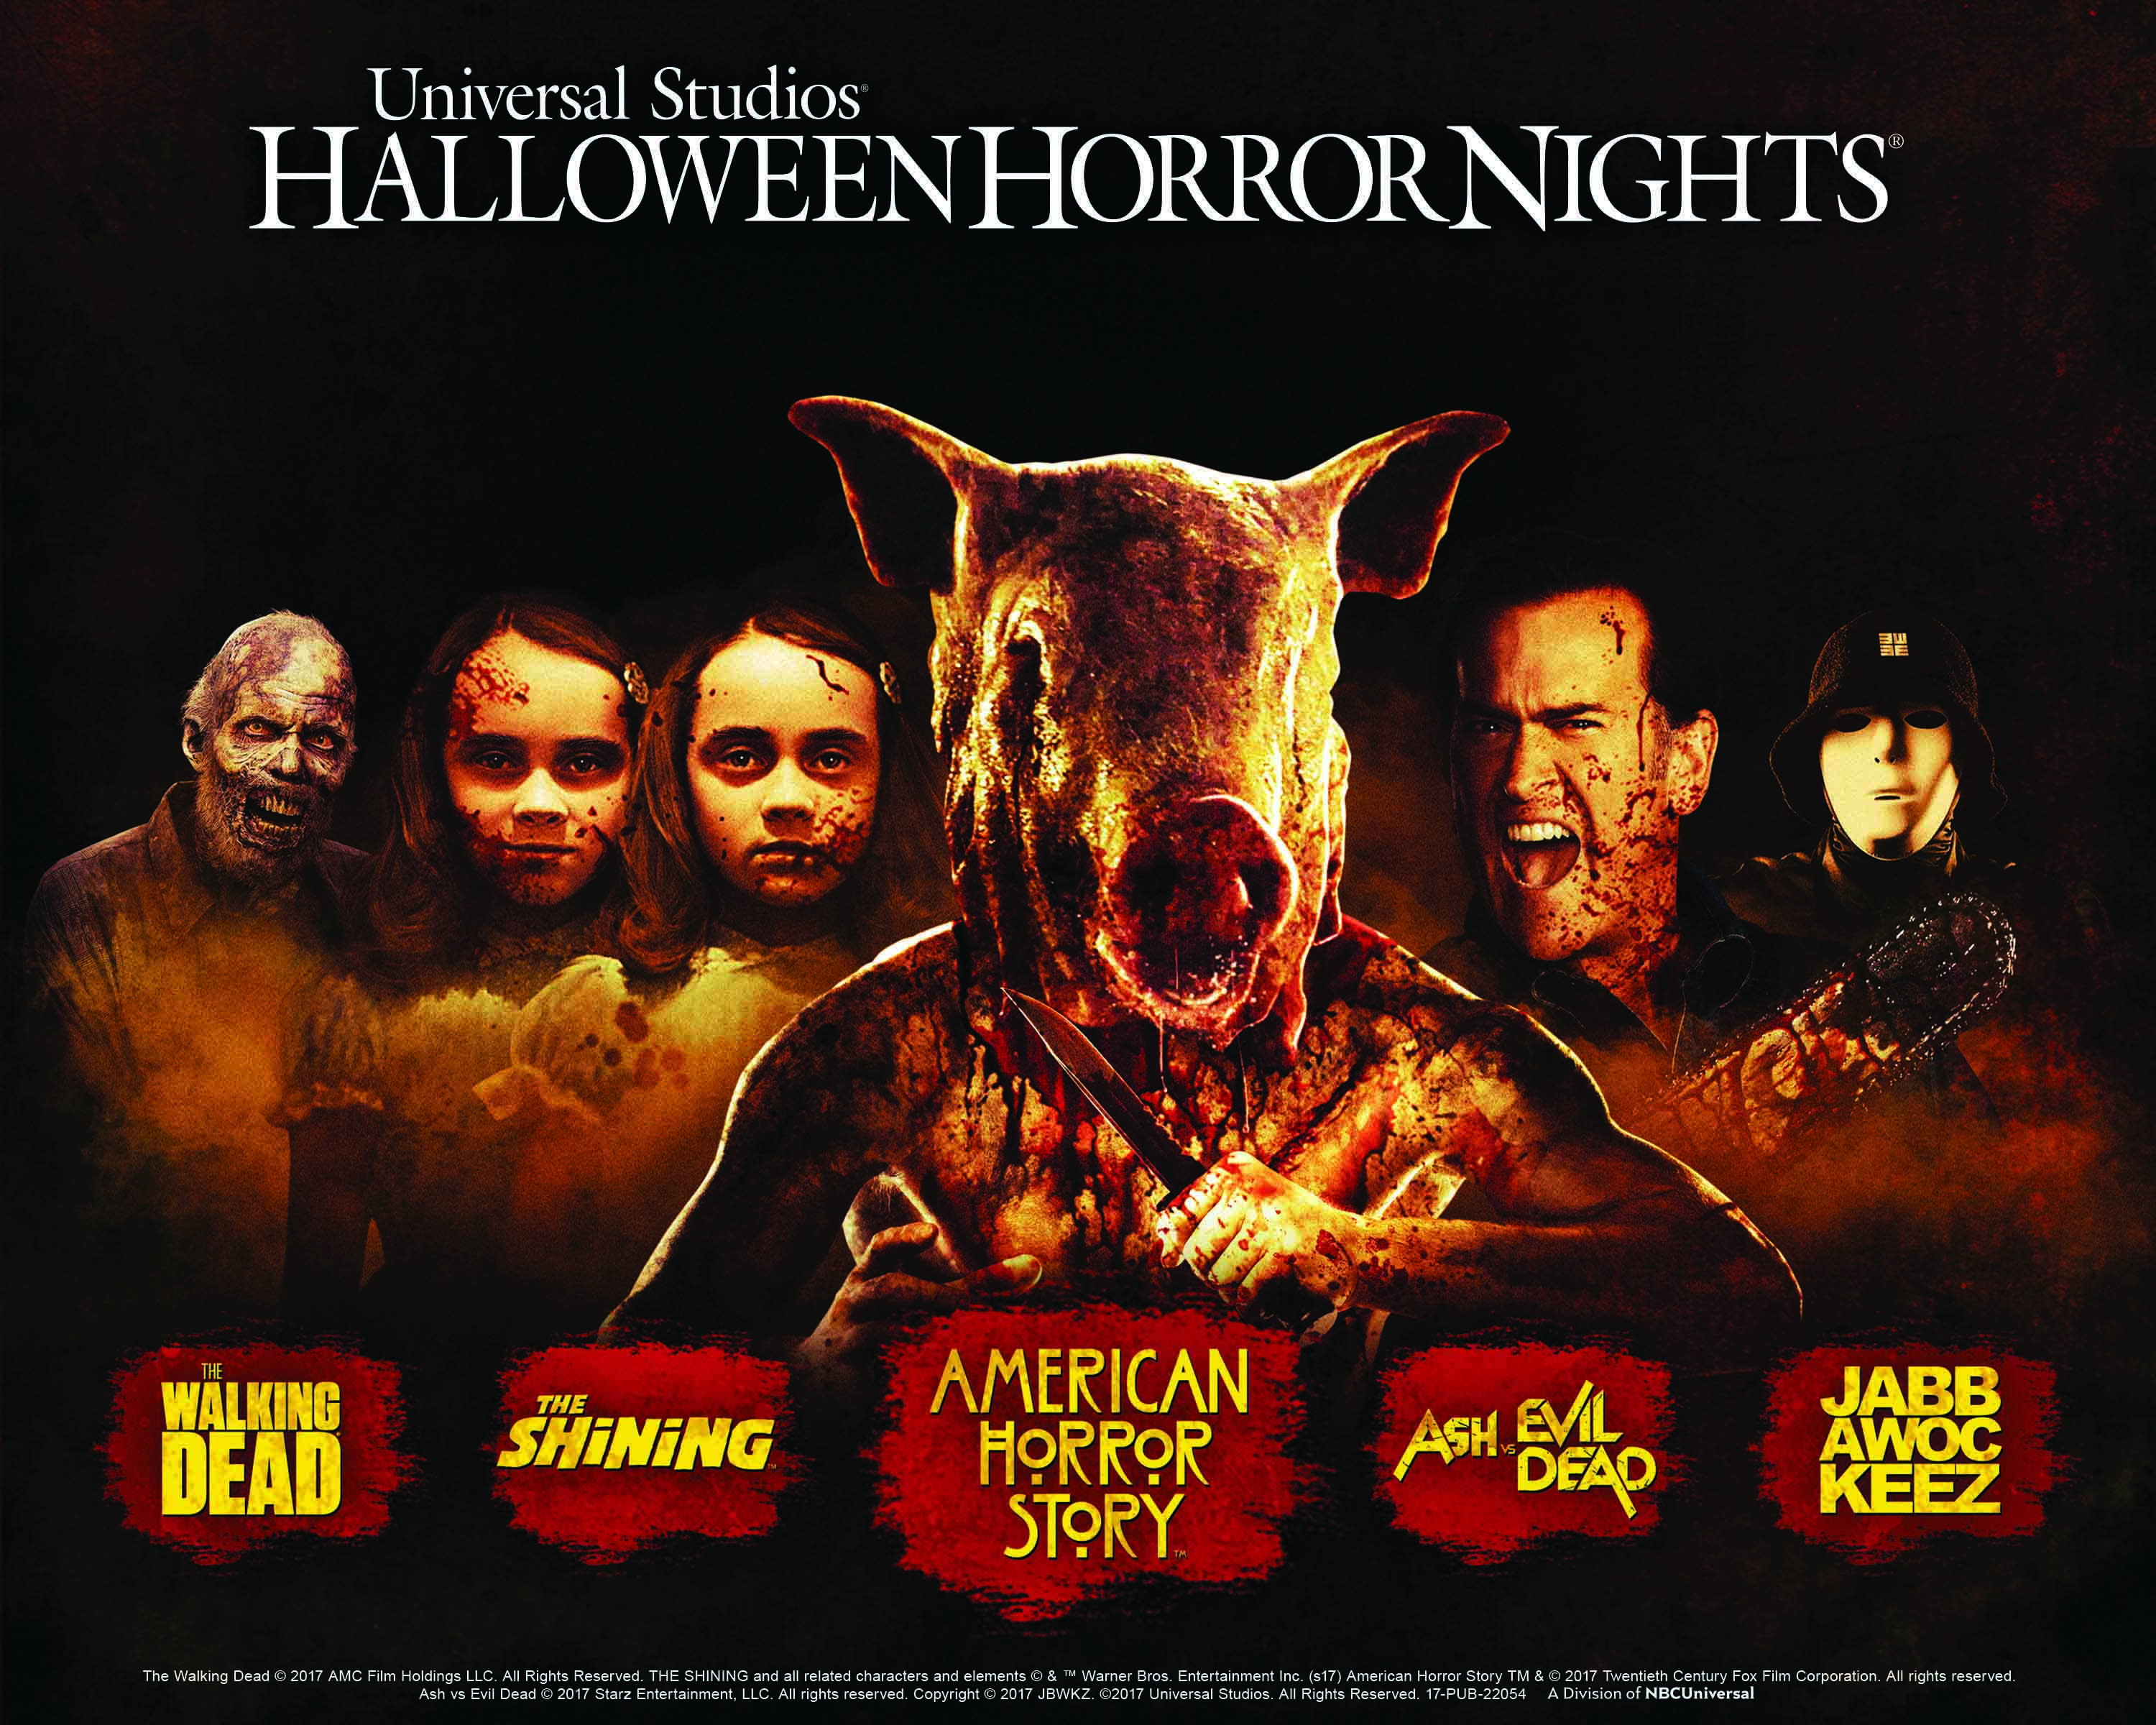 Universal Studio Hollywood Halloween Horror Nights 2020 Ticket pricing and packages released for Halloween Horror Nights